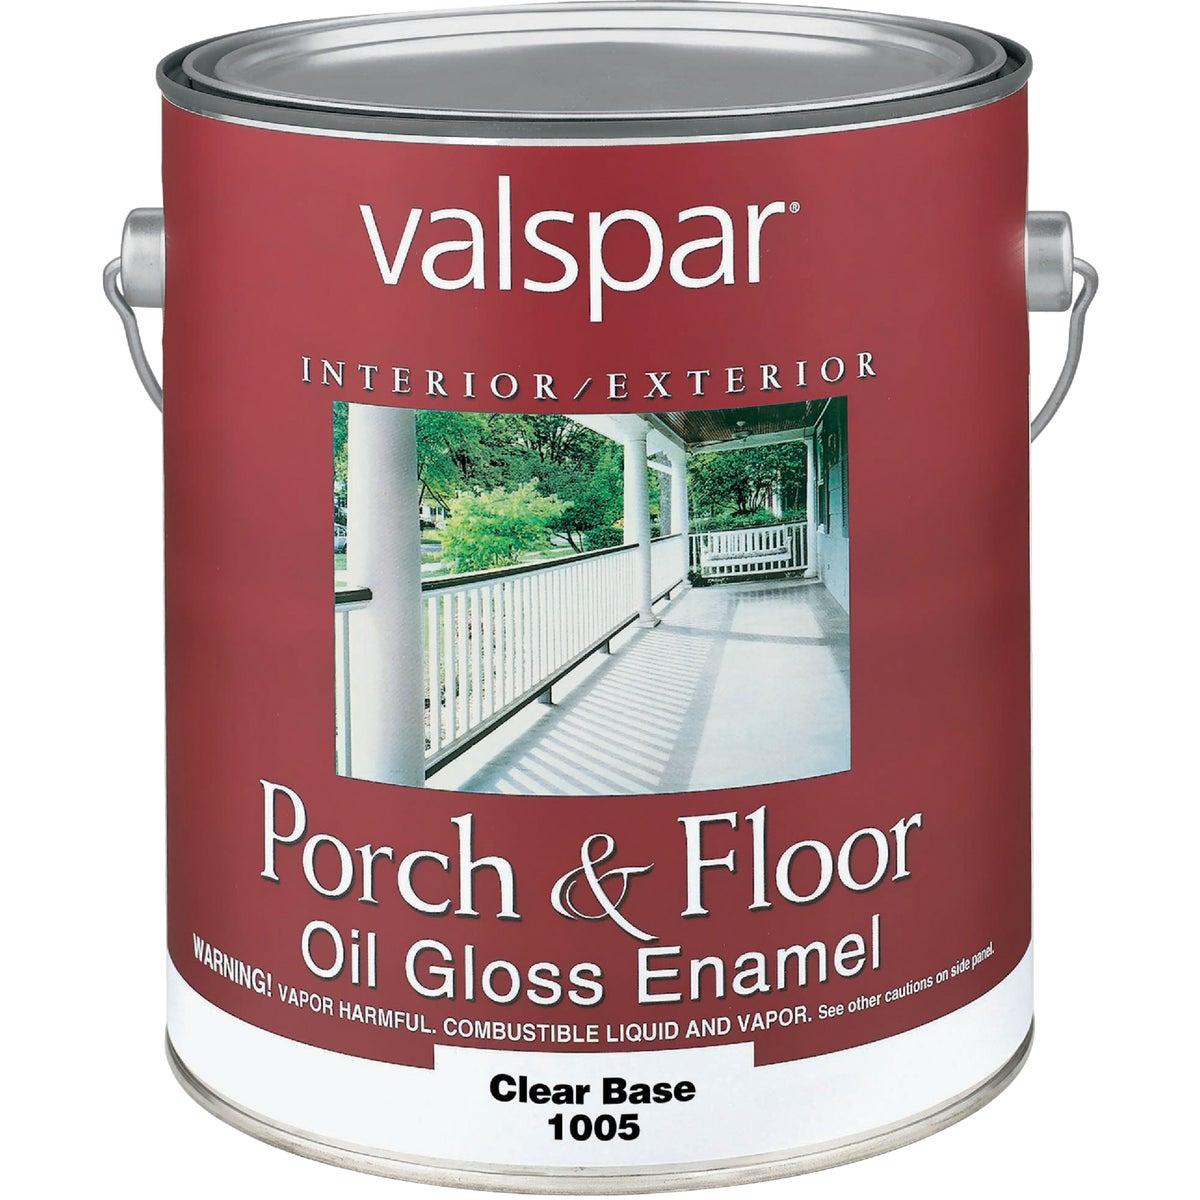 CLR BS OIL FLOOR ENAMEL - 027.0001005.007 by Valspar Corp